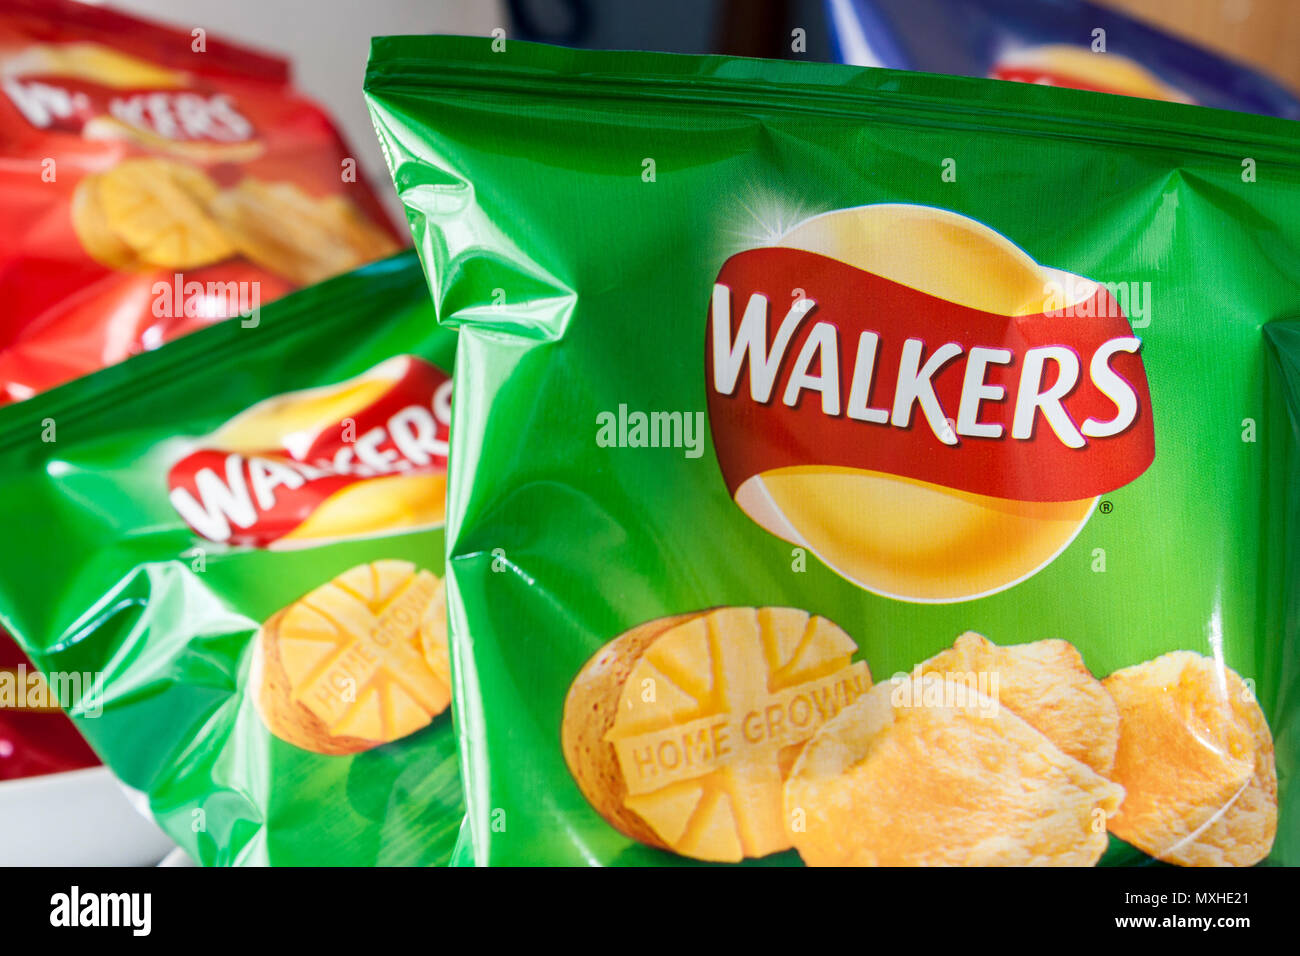 Walkers crisps packets assorted flavours - Stock Image